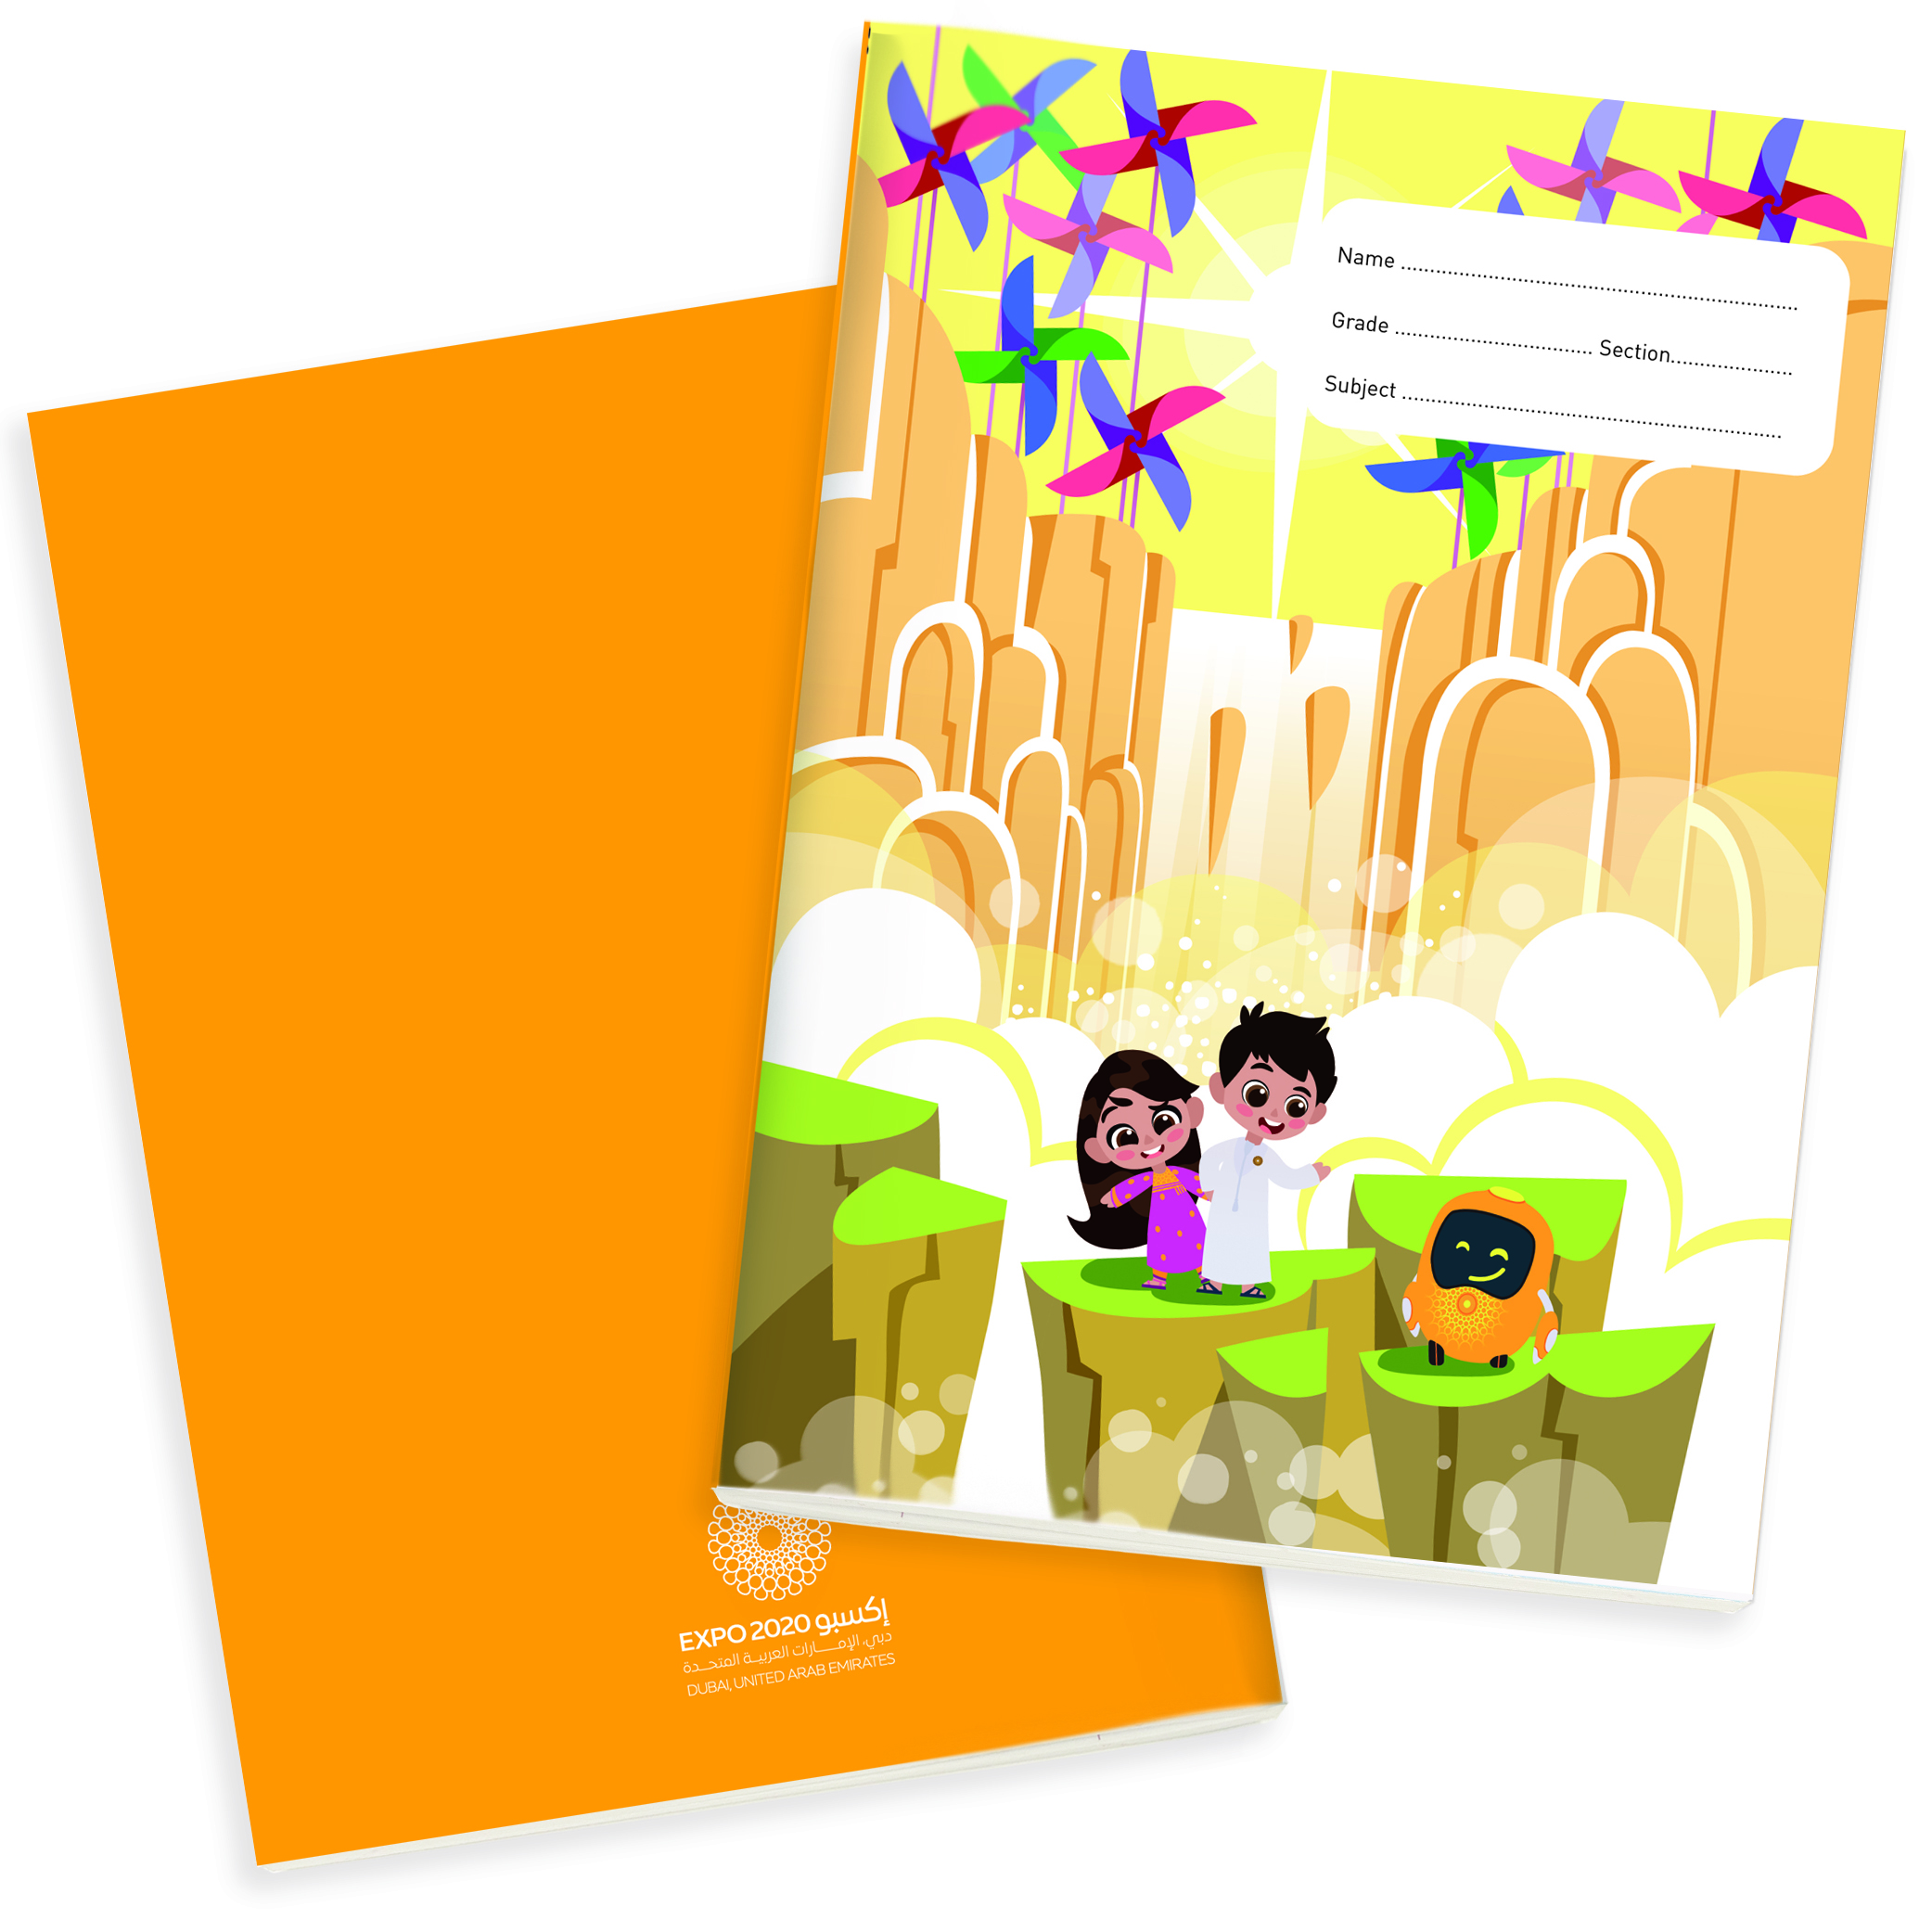 Expo 2020 Dubai Mascots B5 Exercise Books Pack of 4 - 160 Pages